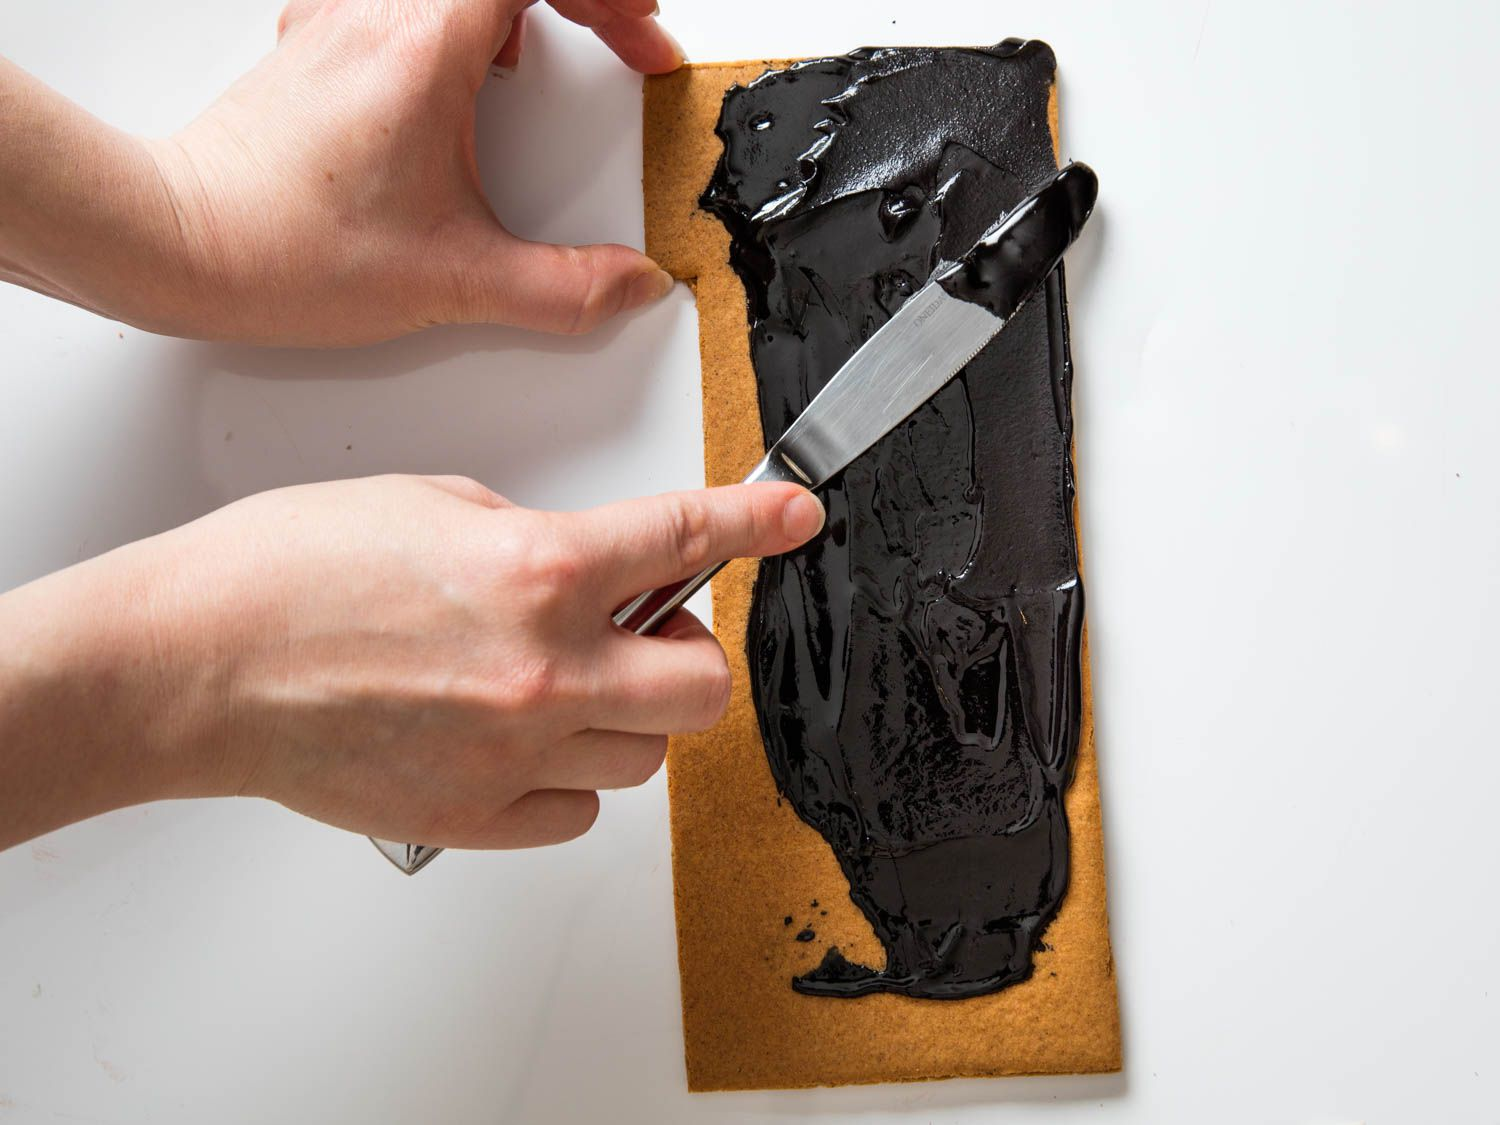 Painting black frosting over a piece of gingerbread to make a haunted-house roof